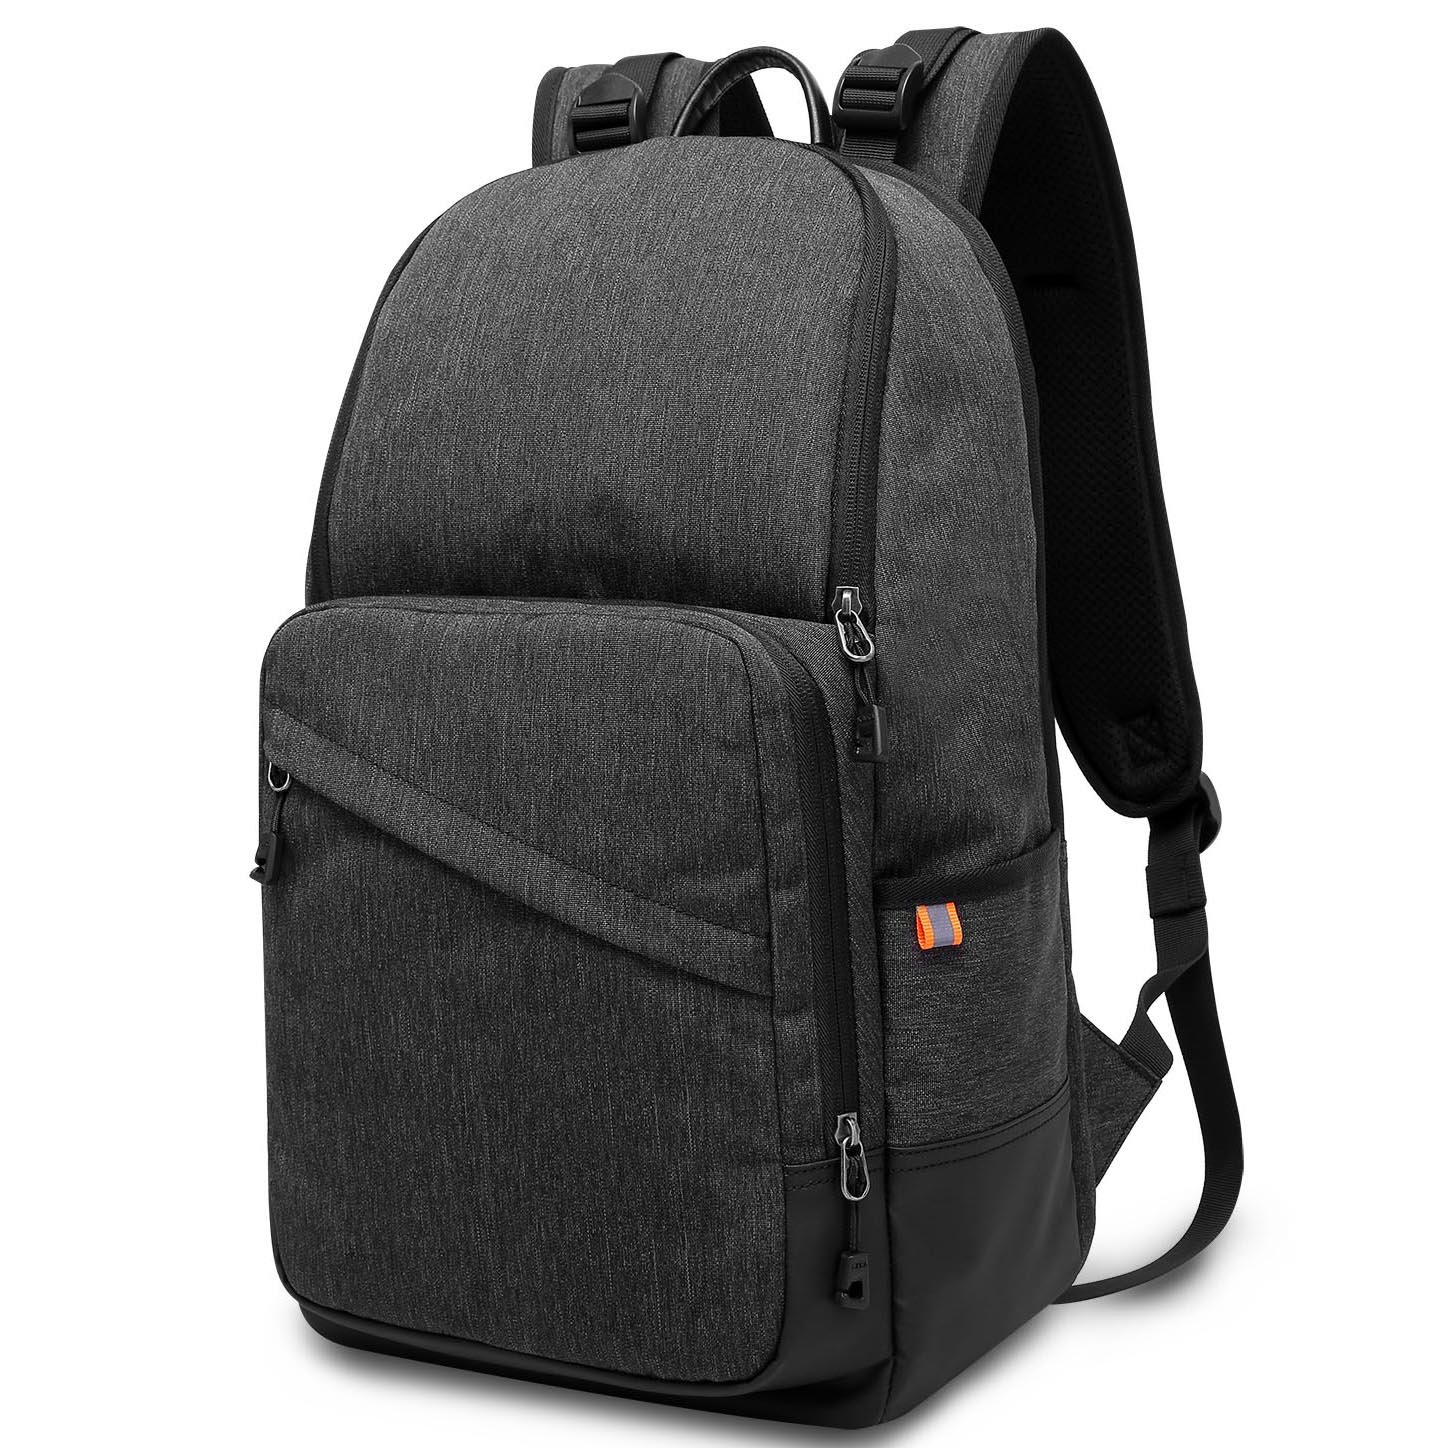 80d79aec768c The bag is made from the durable oxford textile – tear resistant and water  repellent. It has a large capacity to fit most laptop brands and sizes.